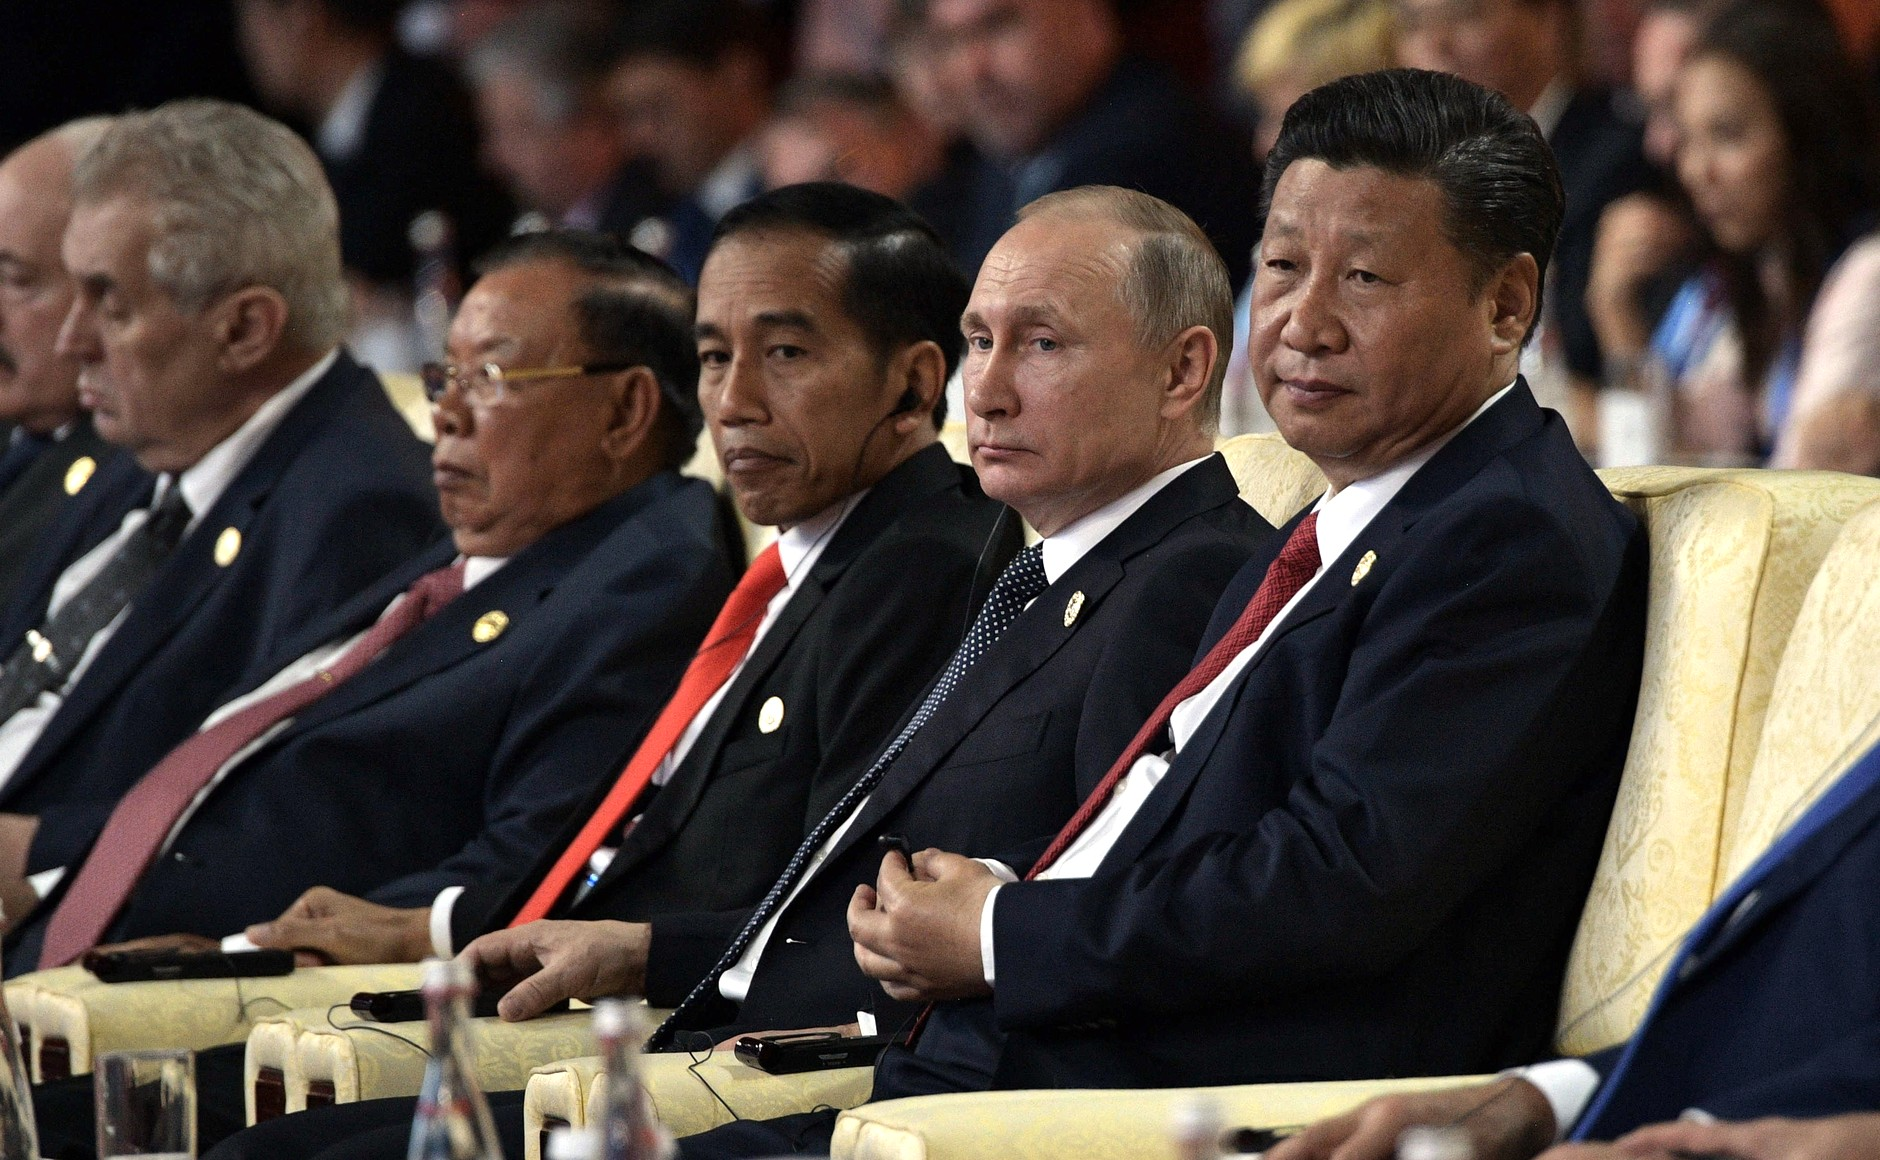 PRC President Xi Jinping at the Belt and Road international forum in 2017